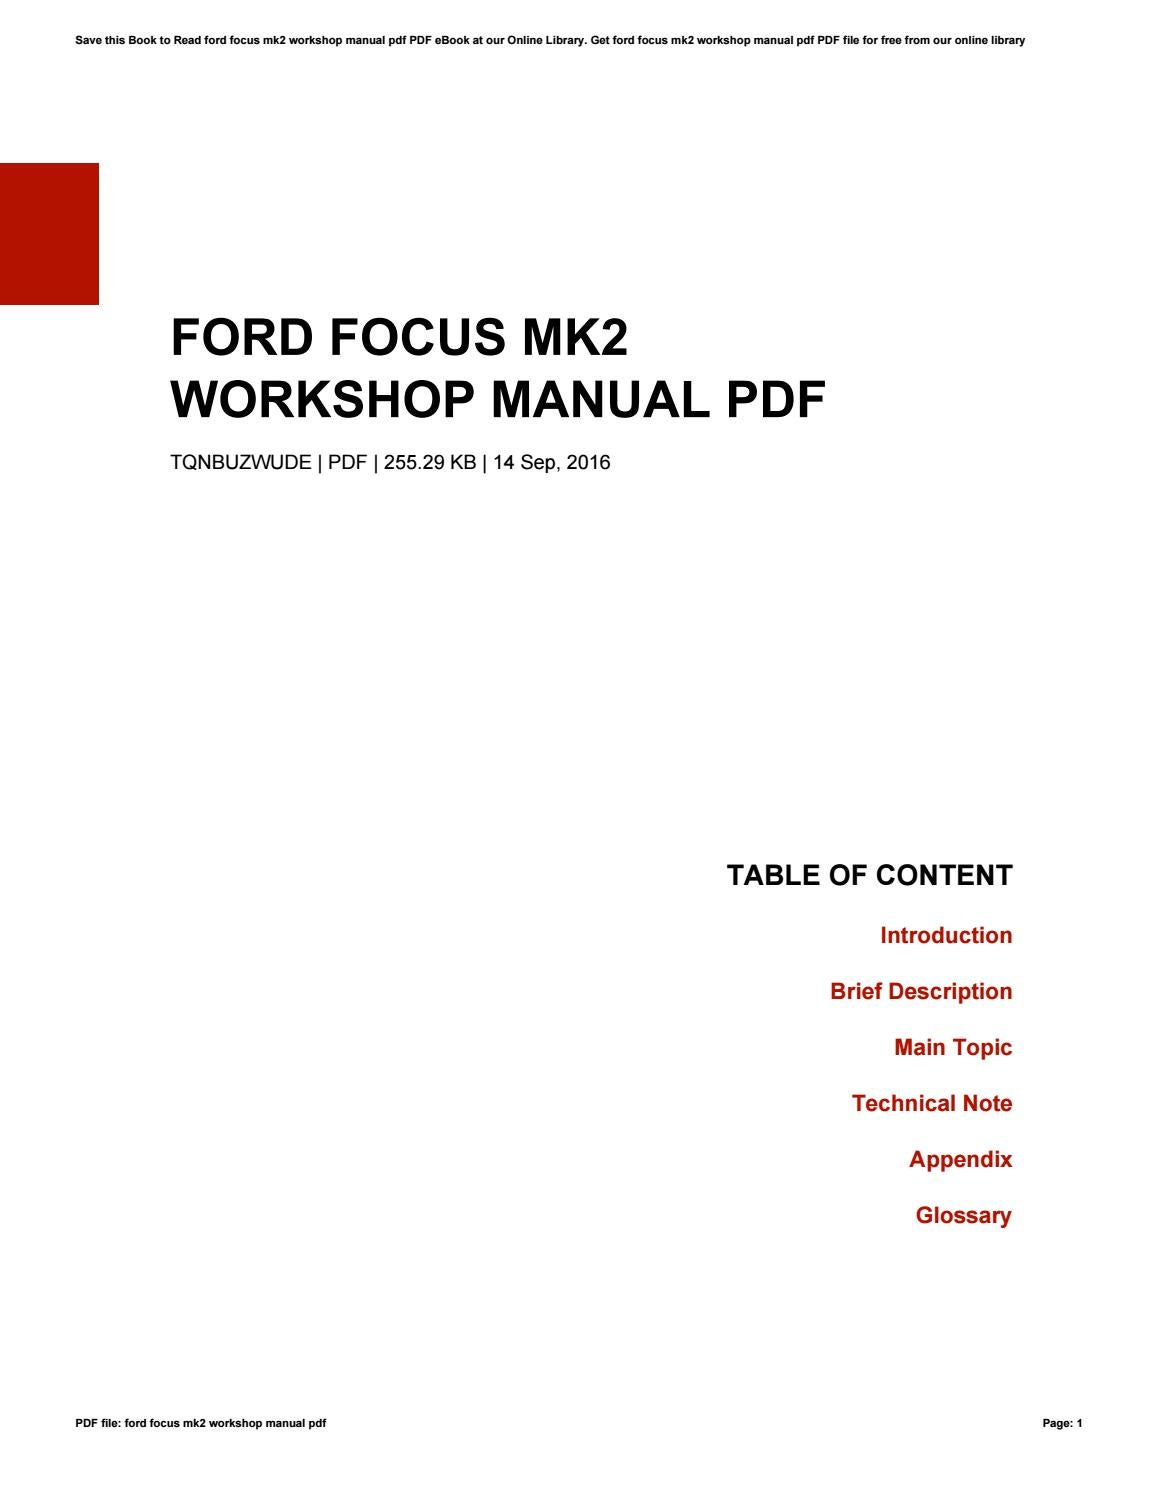 service manual pdf official ford focus mk2 workshop. Black Bedroom Furniture Sets. Home Design Ideas